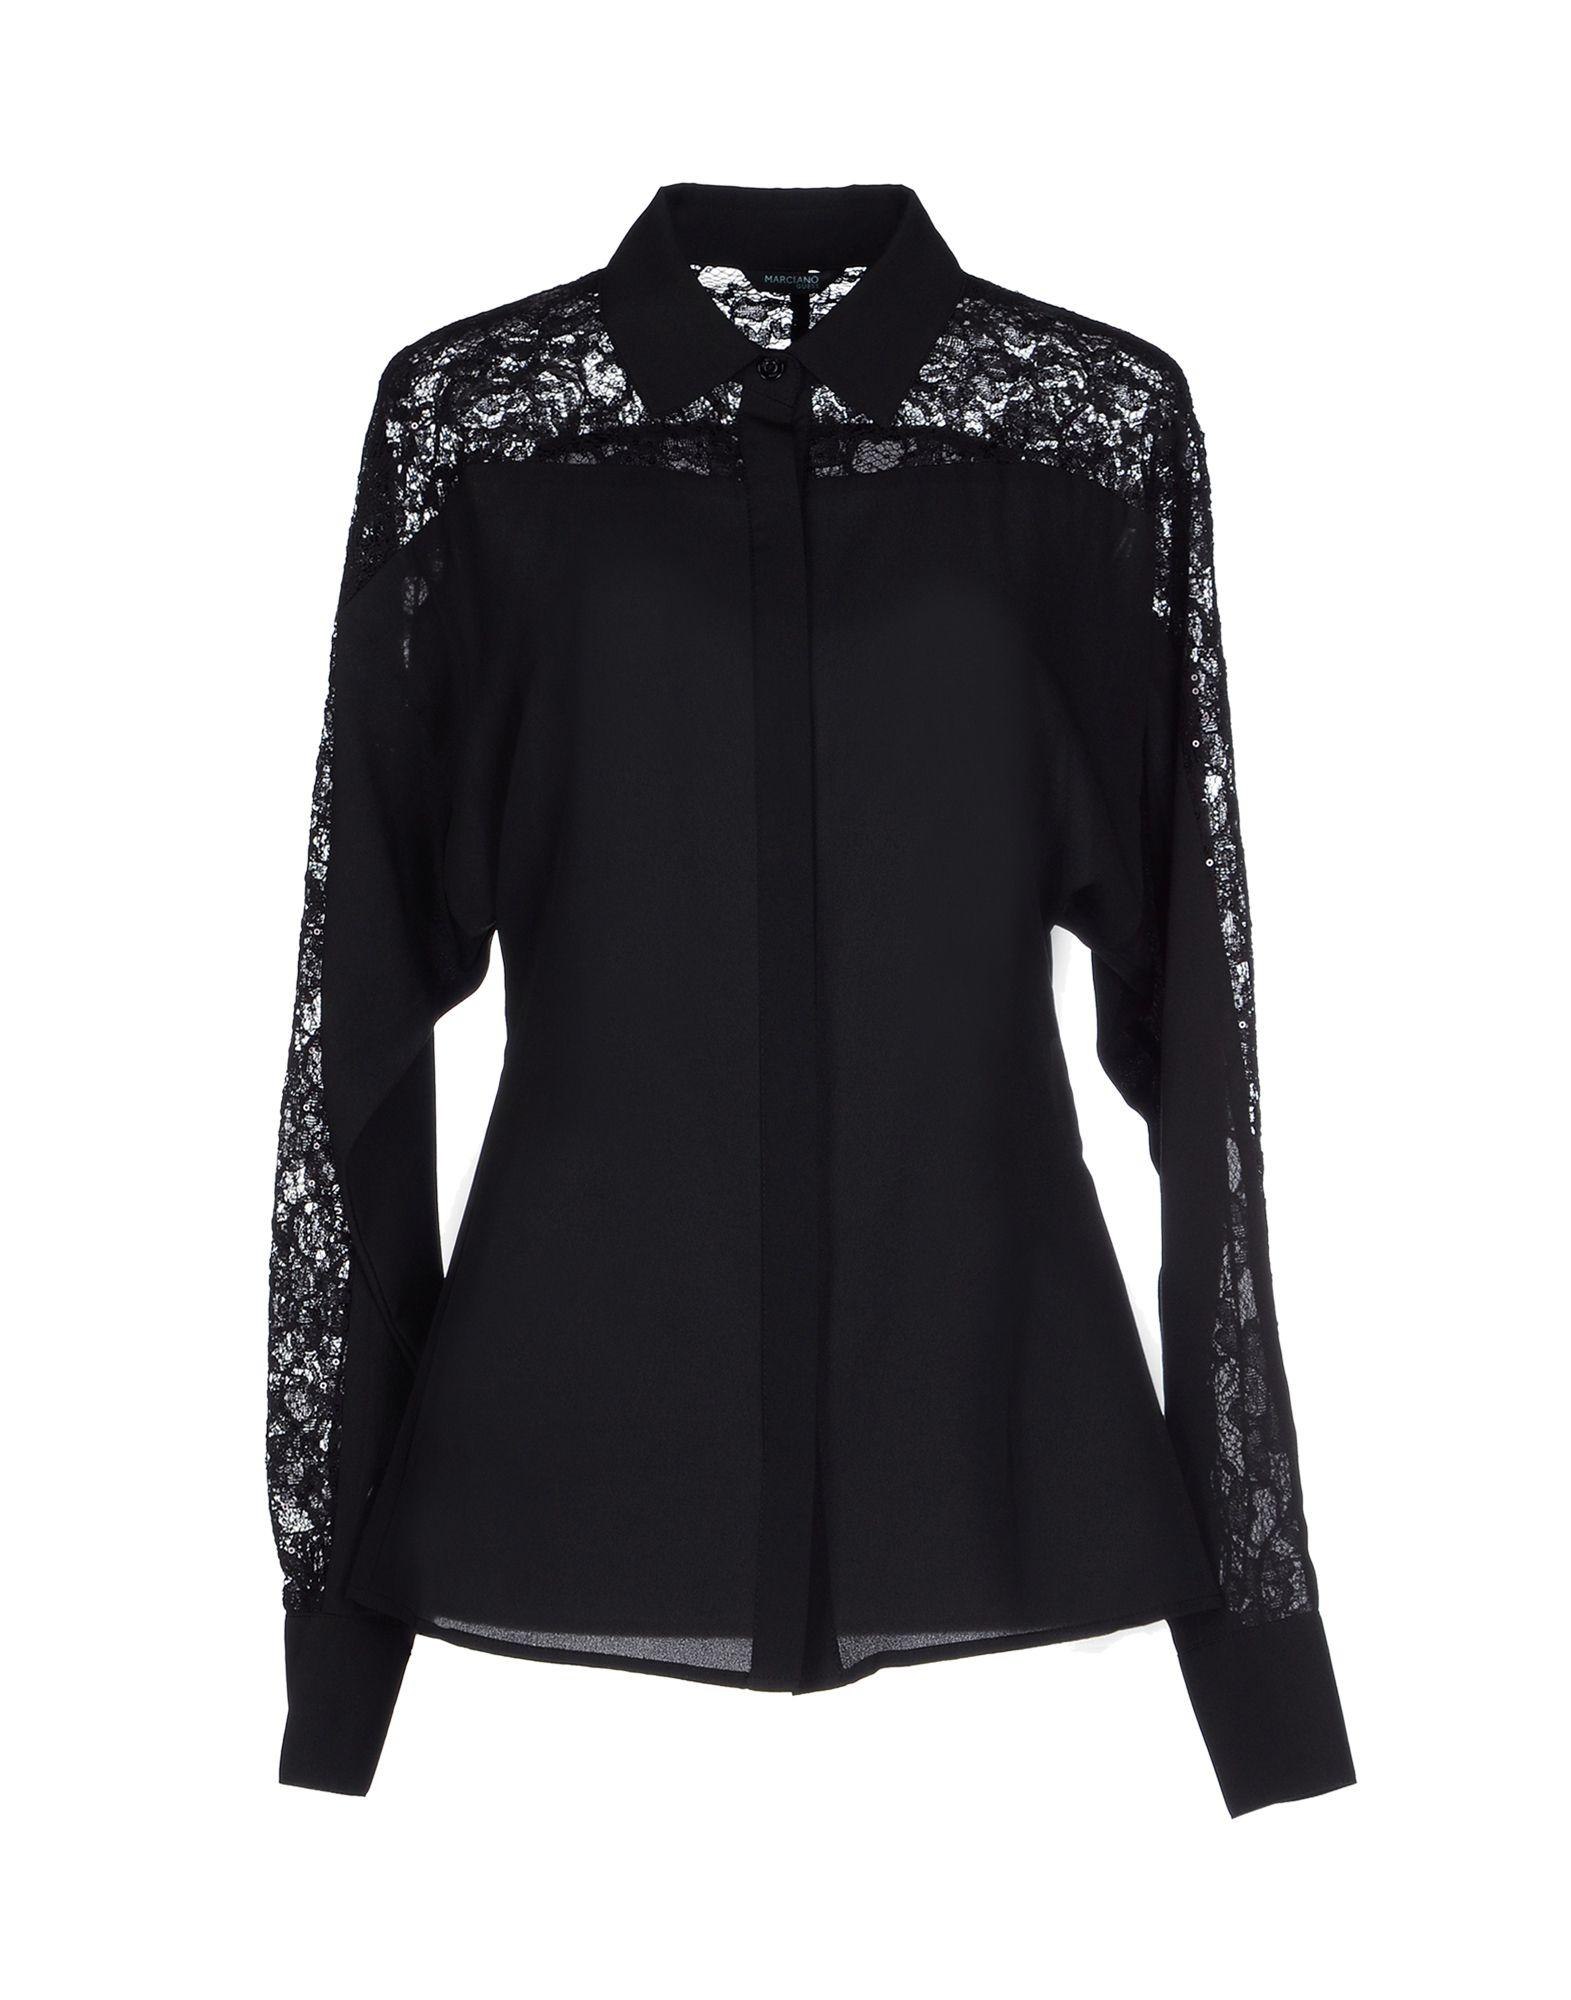 Guess Shirt in Black | Lyst